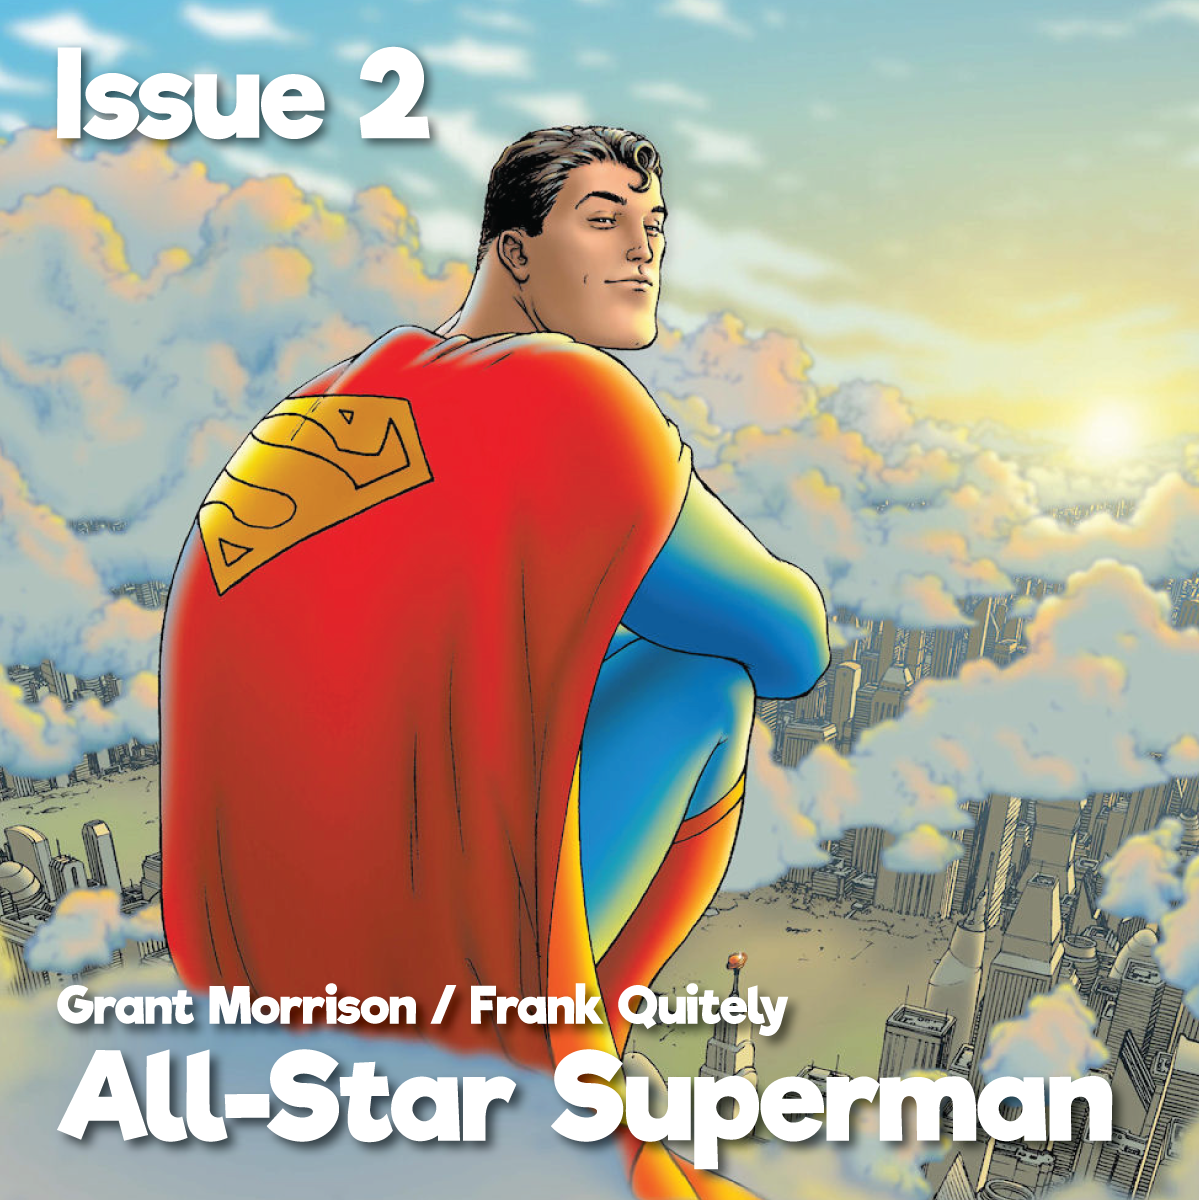 Issue2_ASSuperman_1200x1200.png